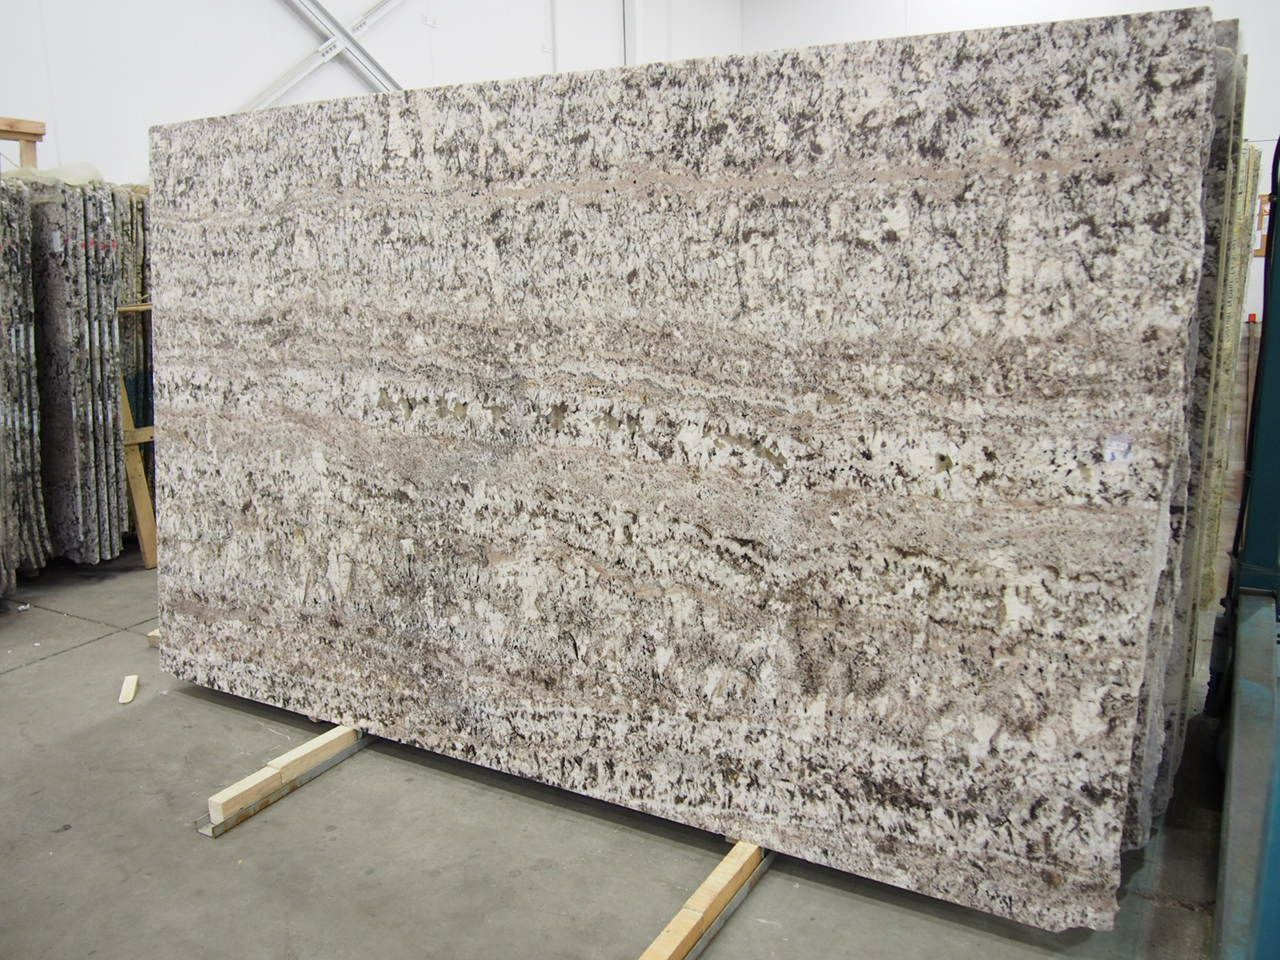 White Torroncino Granite Slab Sold By Milestone Marble Size 115 X 68 X 3 4 Inches With Images Granite Slab Types Of Granite Granite